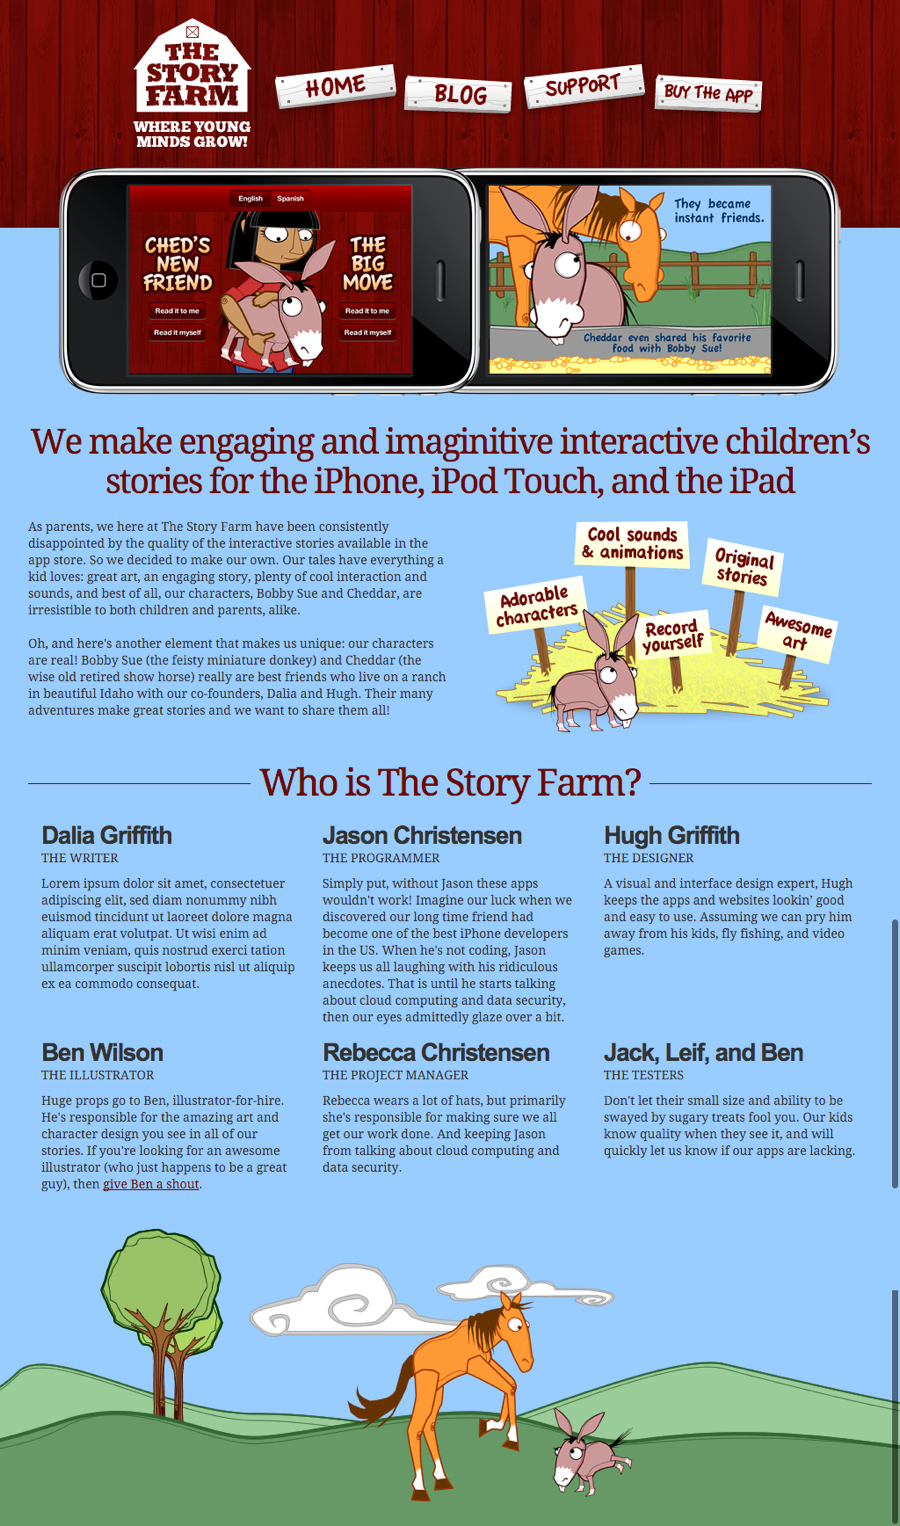 Image of The Story Farm website